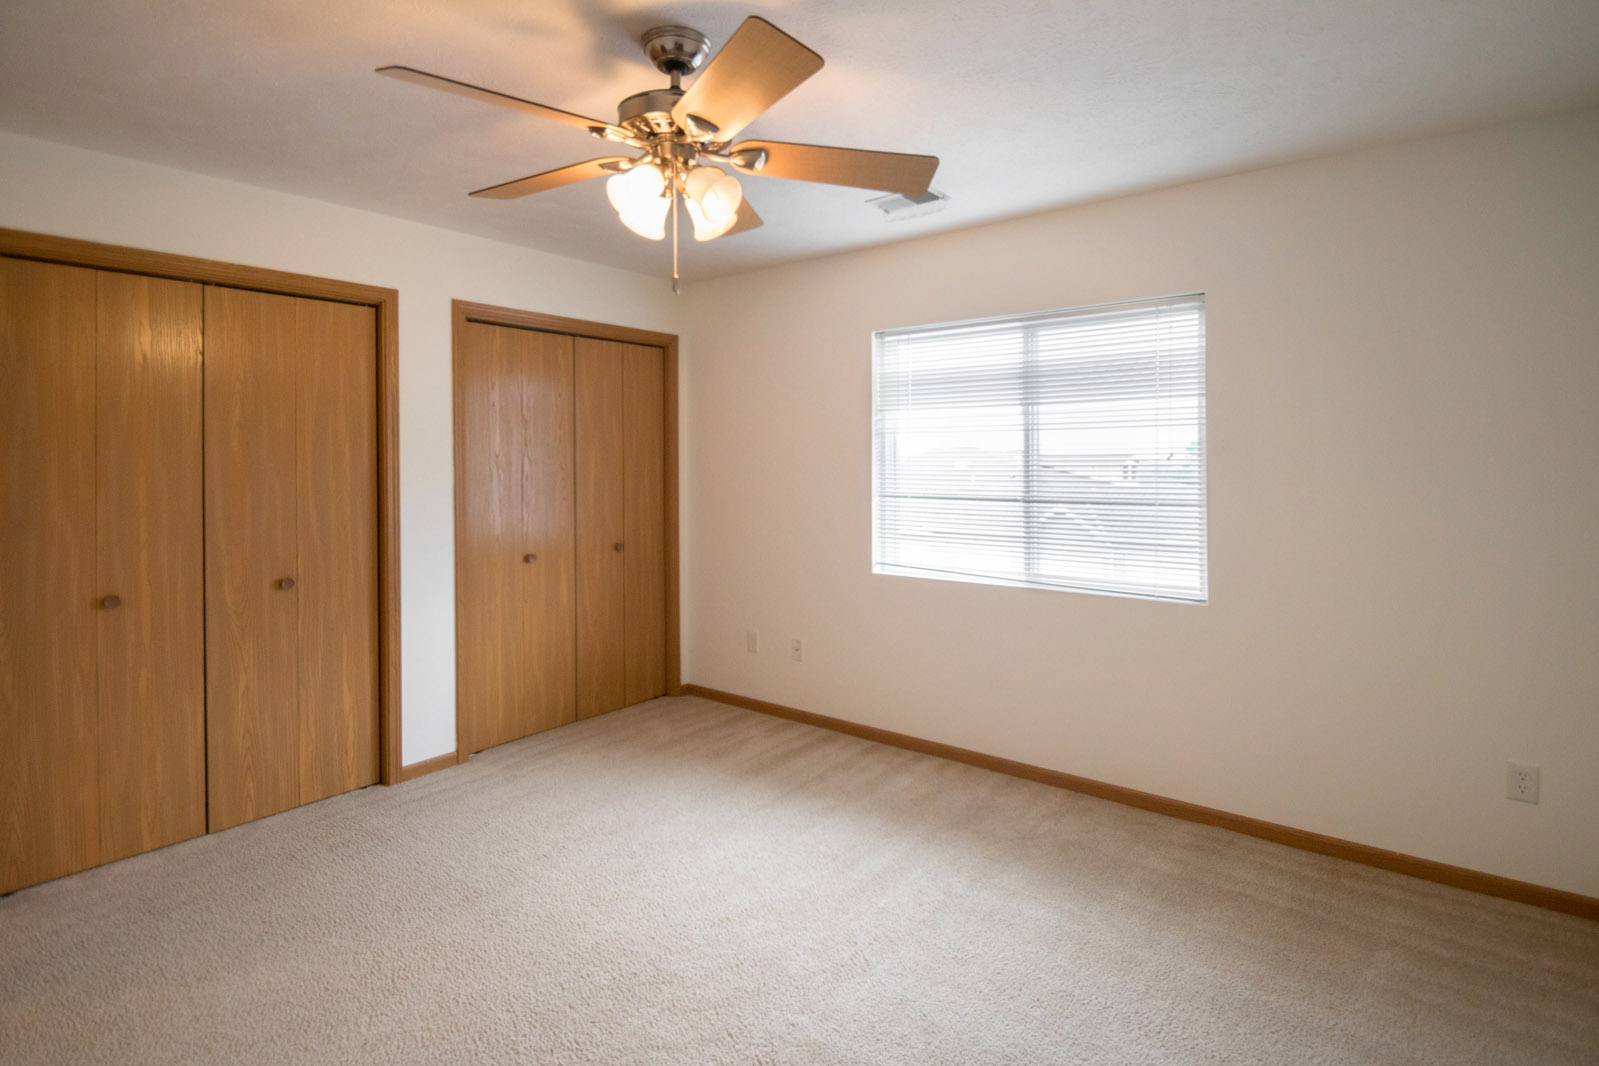 Ceiling Fans at Northridge Apartments in Gretna, Nebraska